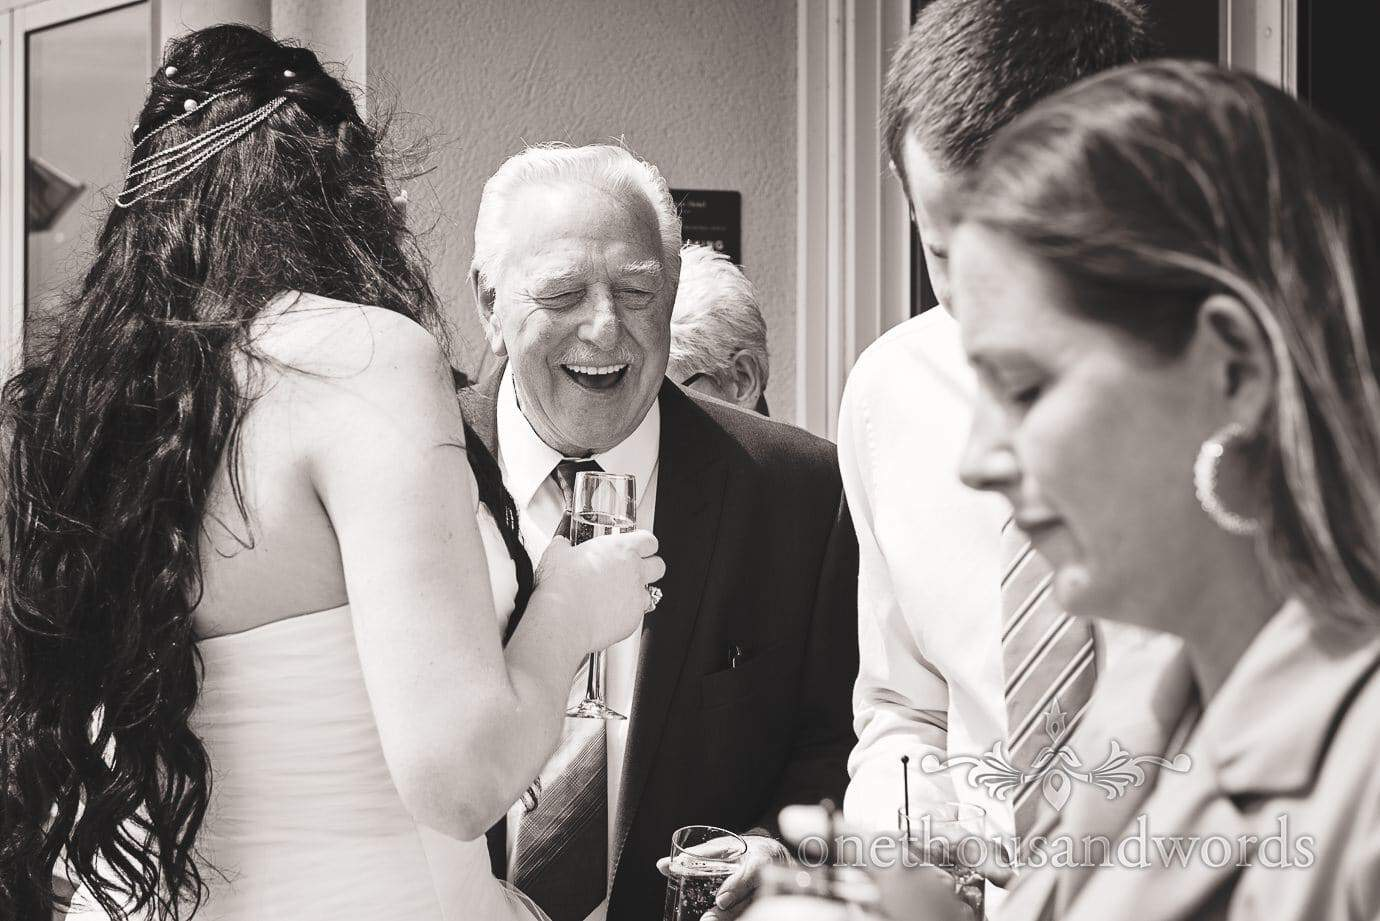 Black and white wedding photograph of elderly wedding guest laughing with bride